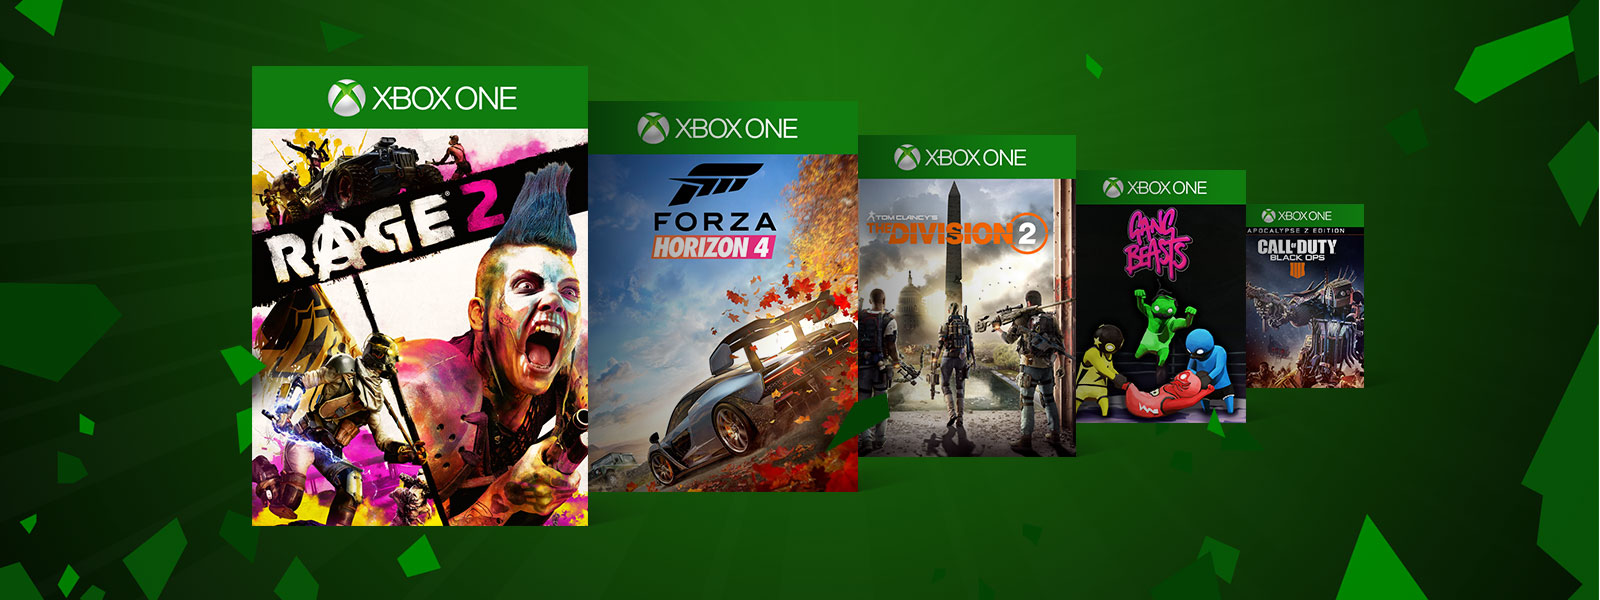 A collage of box art for Xbox One games on sale. Rage 2, Forza Horizon 4, Tom Clancy's The Division 2, Gang Beasts, and Call of Duty Black Ops 4